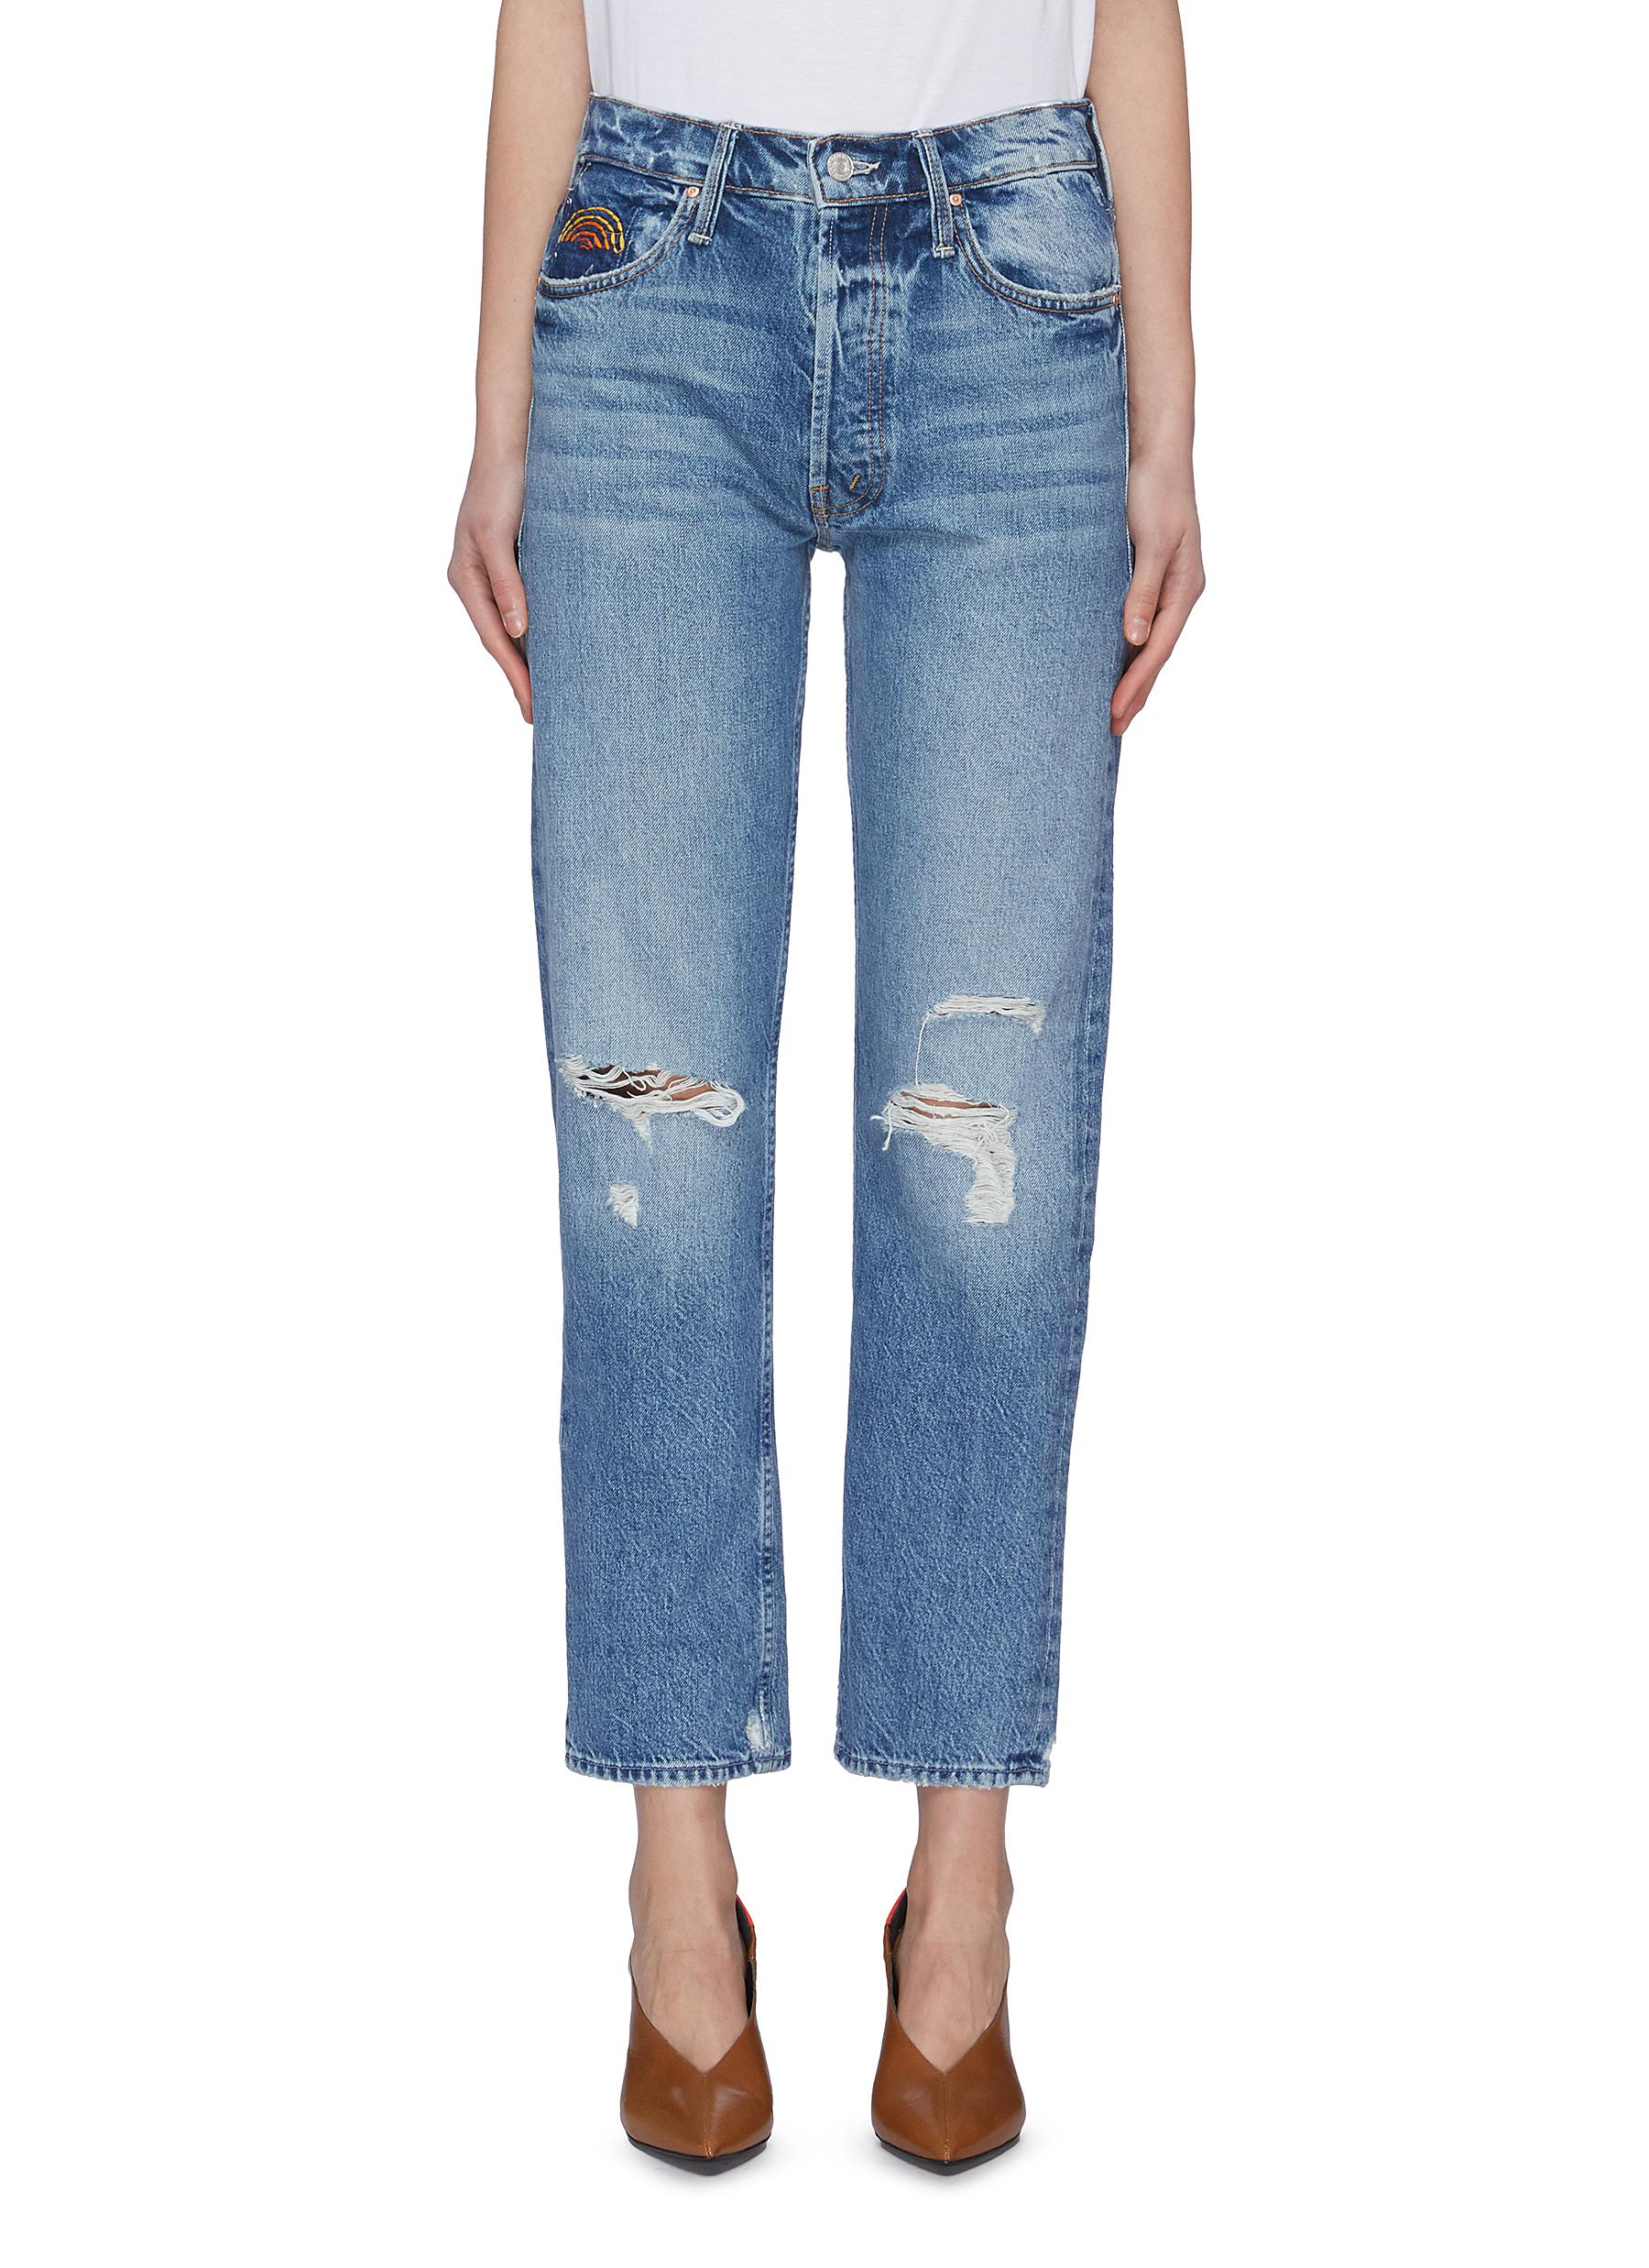 Buy Mother Jeans 'The Tomcat HR' colour topstitching pocket ripped knee jeans